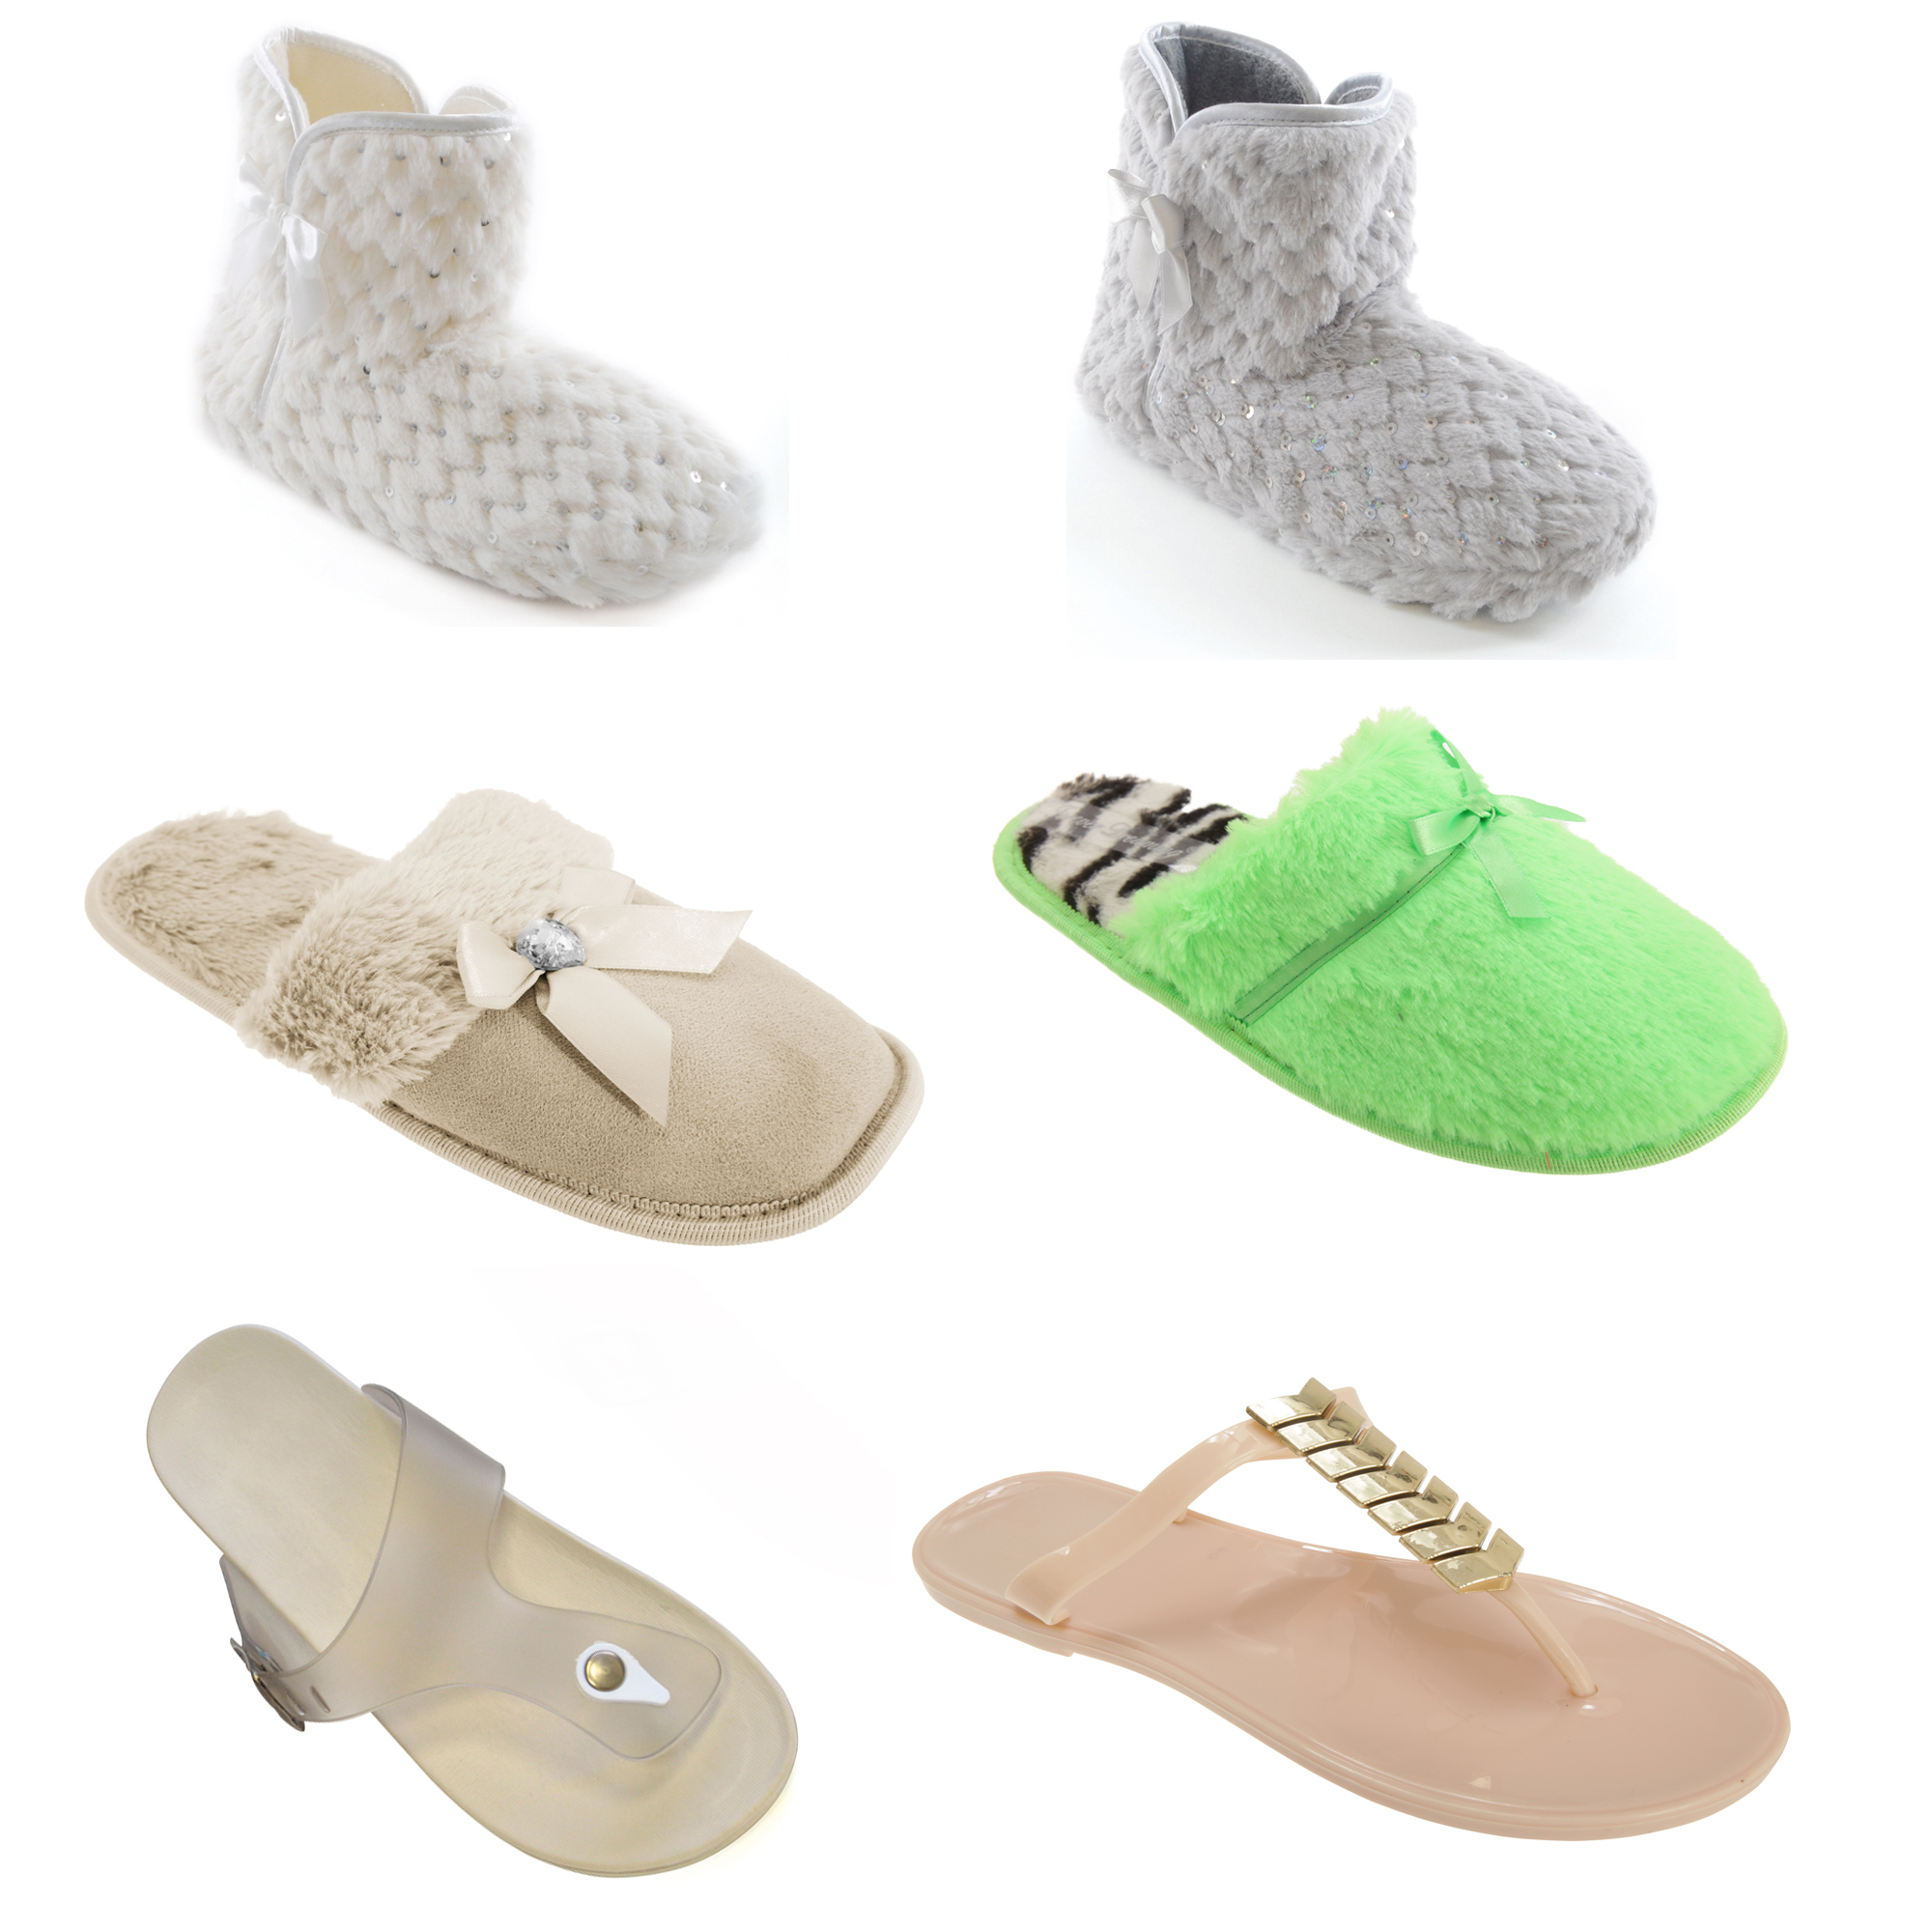 Bulk, Wholesale, Job Lot, Clearance Assorted Clothing (Dresses, Tops, Footwear And More) (Box 3) (Assorted Womens Footwear (21 Pairs))